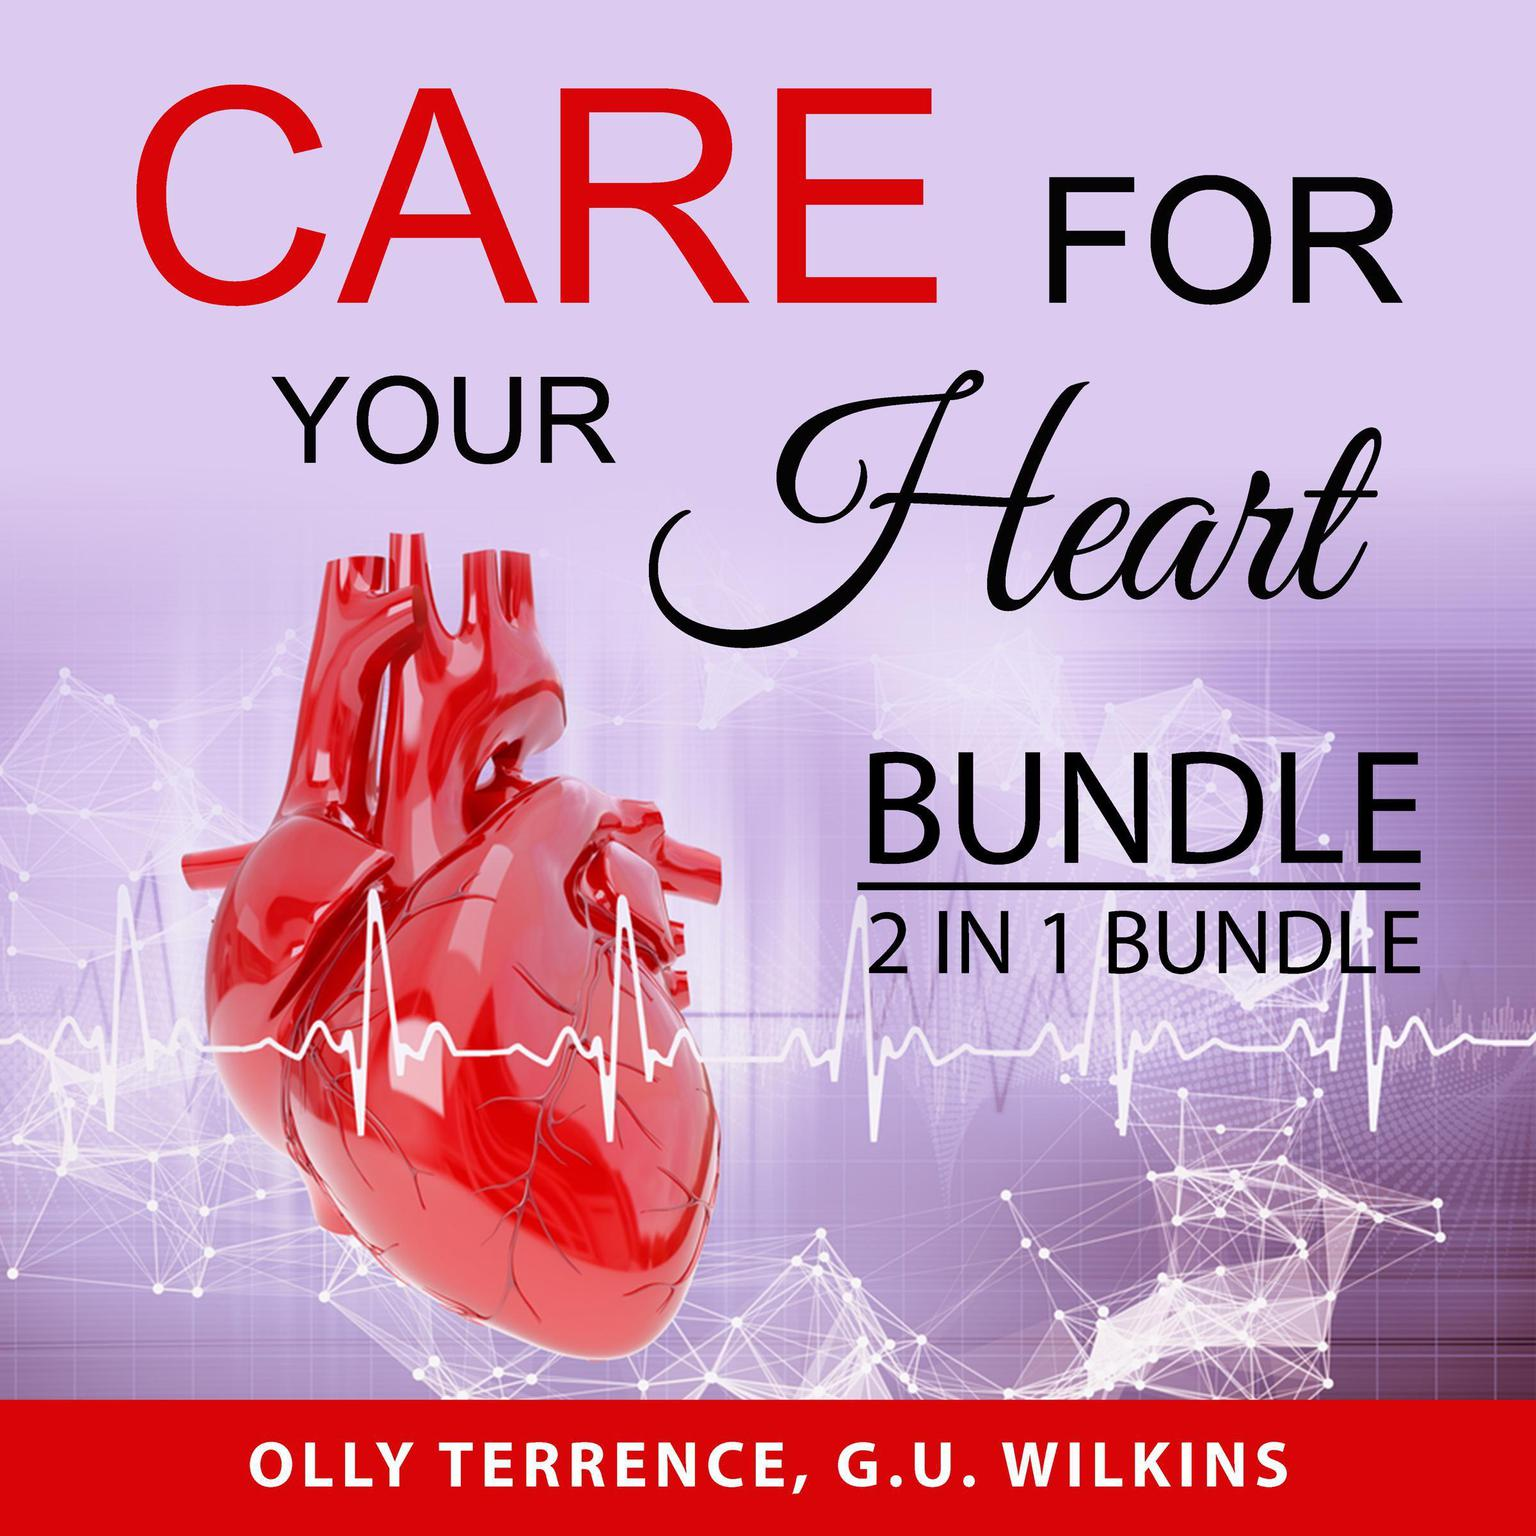 Care For Your Heart Bundle, 2 in 1 Bundle:: Prevent Heart Disease and The Simple Heart Cure  Audiobook, by G.U. Wilkins